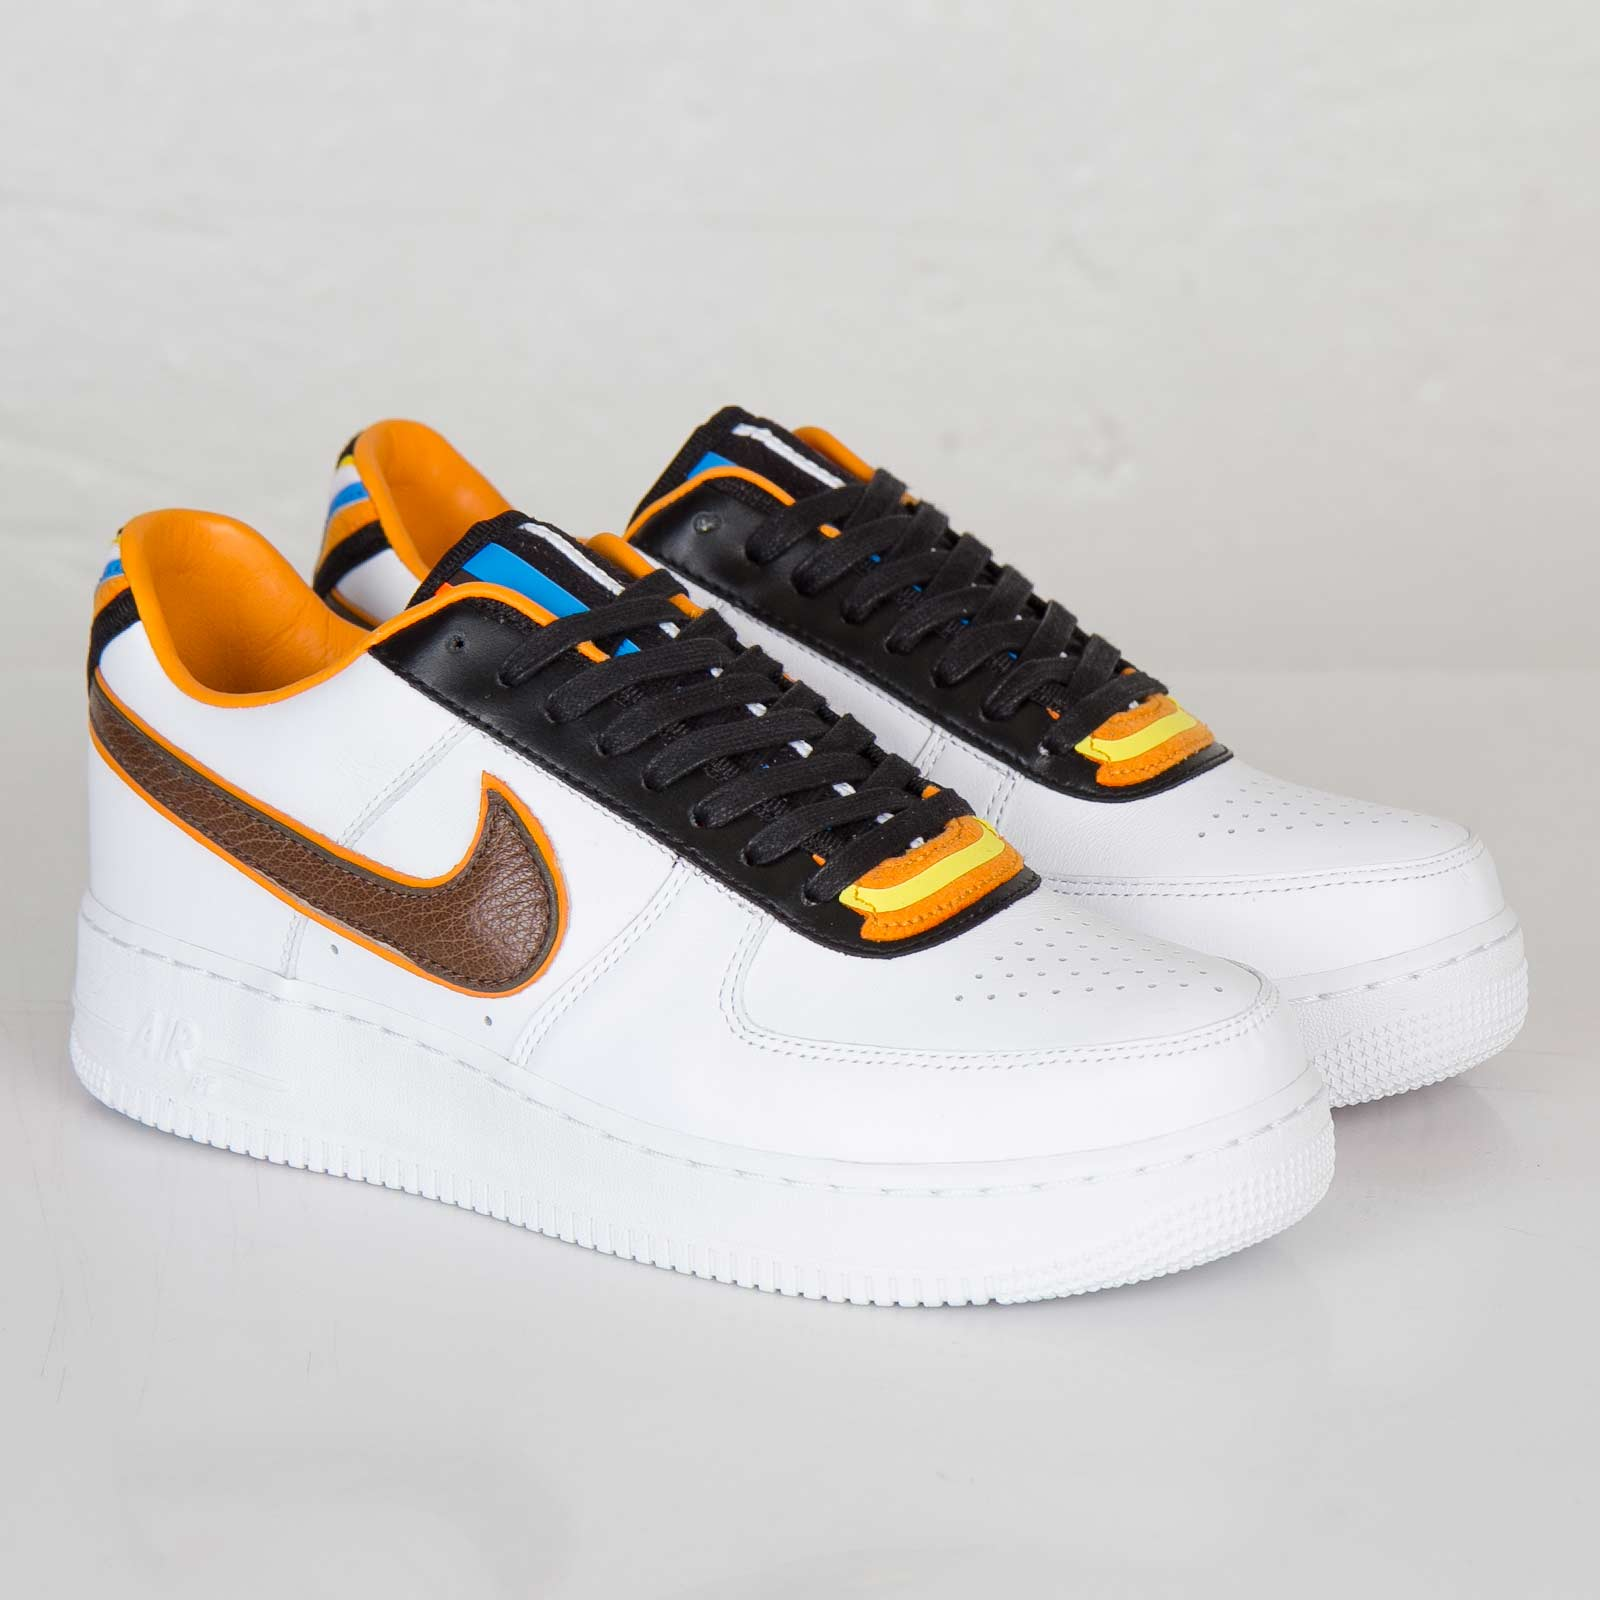 competitive price fb120 c2400 Nike Air Force 1 SP / Tisci - 669917-120 - Sneakersnstuff ...